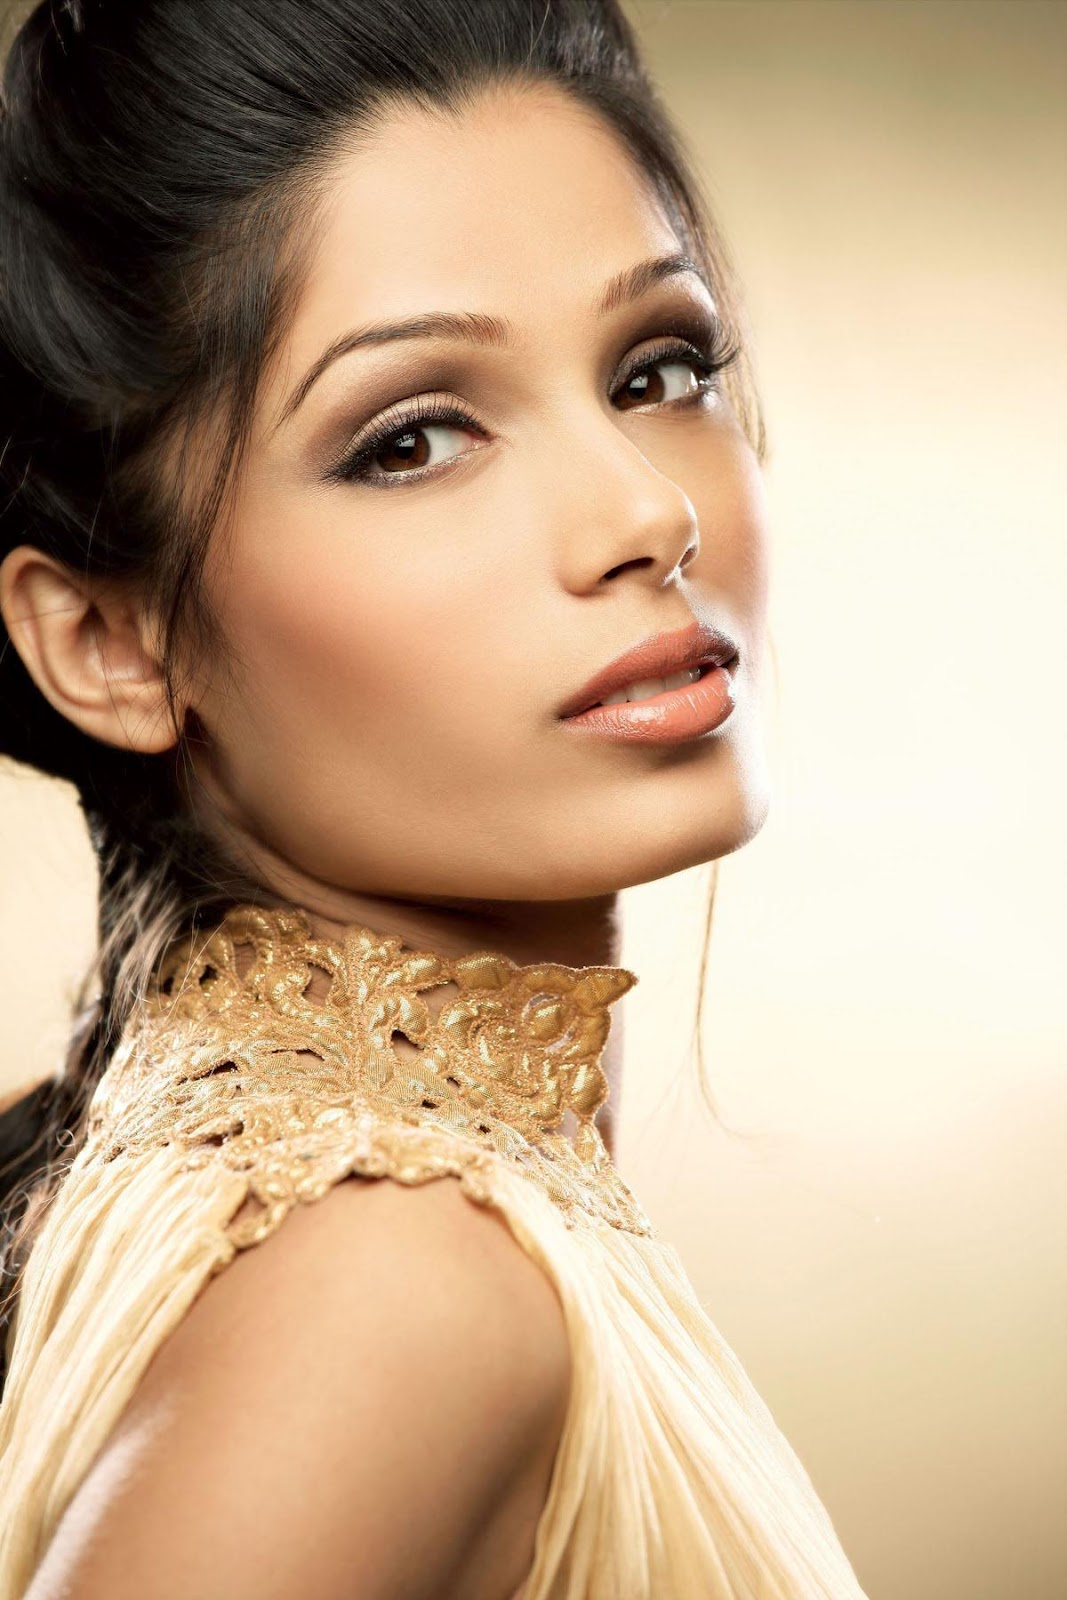 Hot actress pics: Freida Pinto